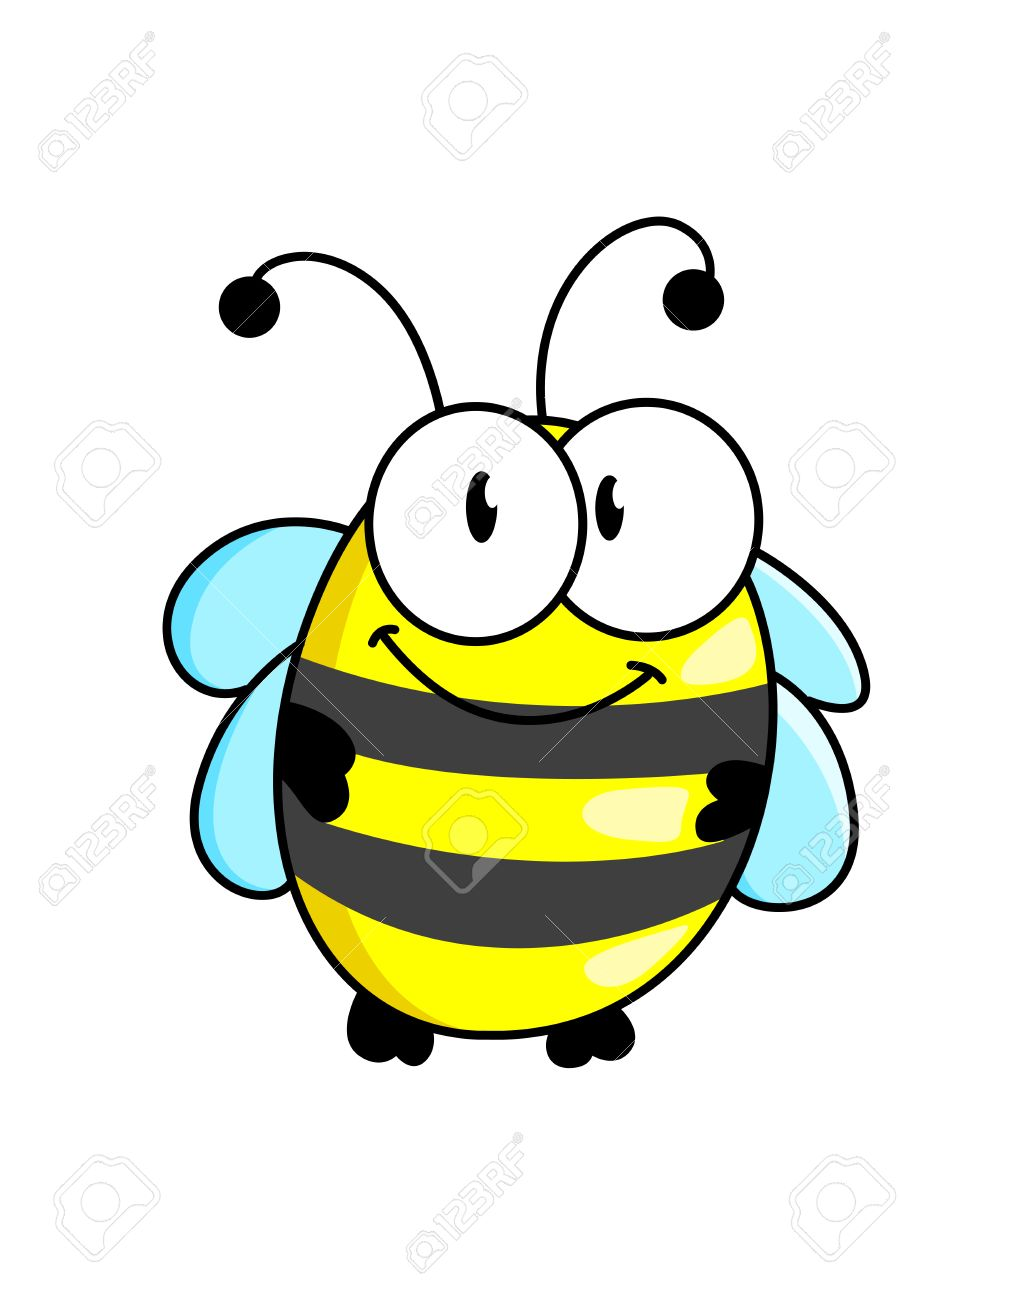 Cartoon cute striped little bumble bee or honey bee with a happy smile isolated on white